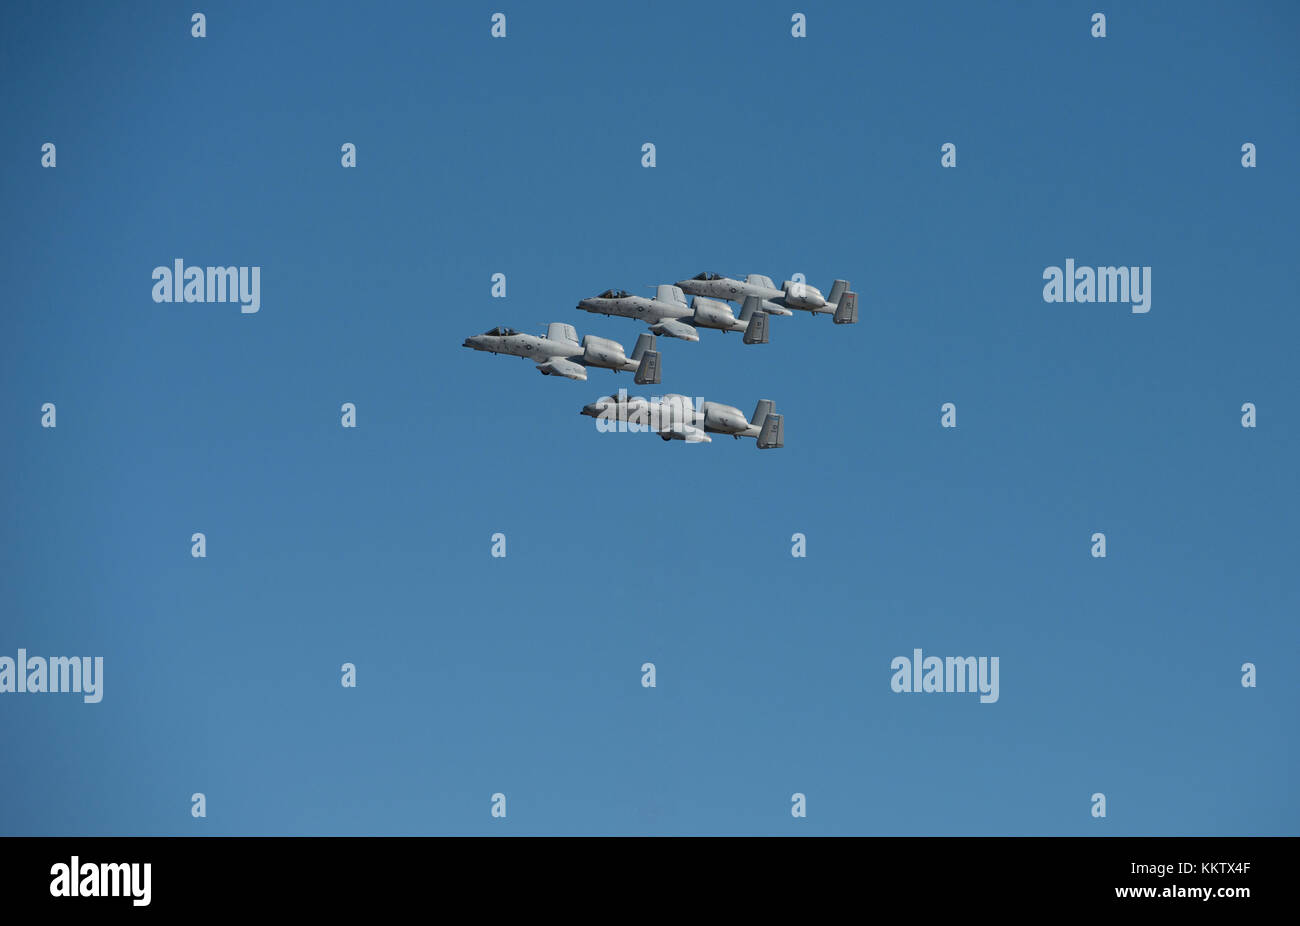 A-10 Thunderbolt II 'Warthogs' flying in formation at 'Gowen Thunder 2017 Airshow' in Boise Idaho - Stock Image